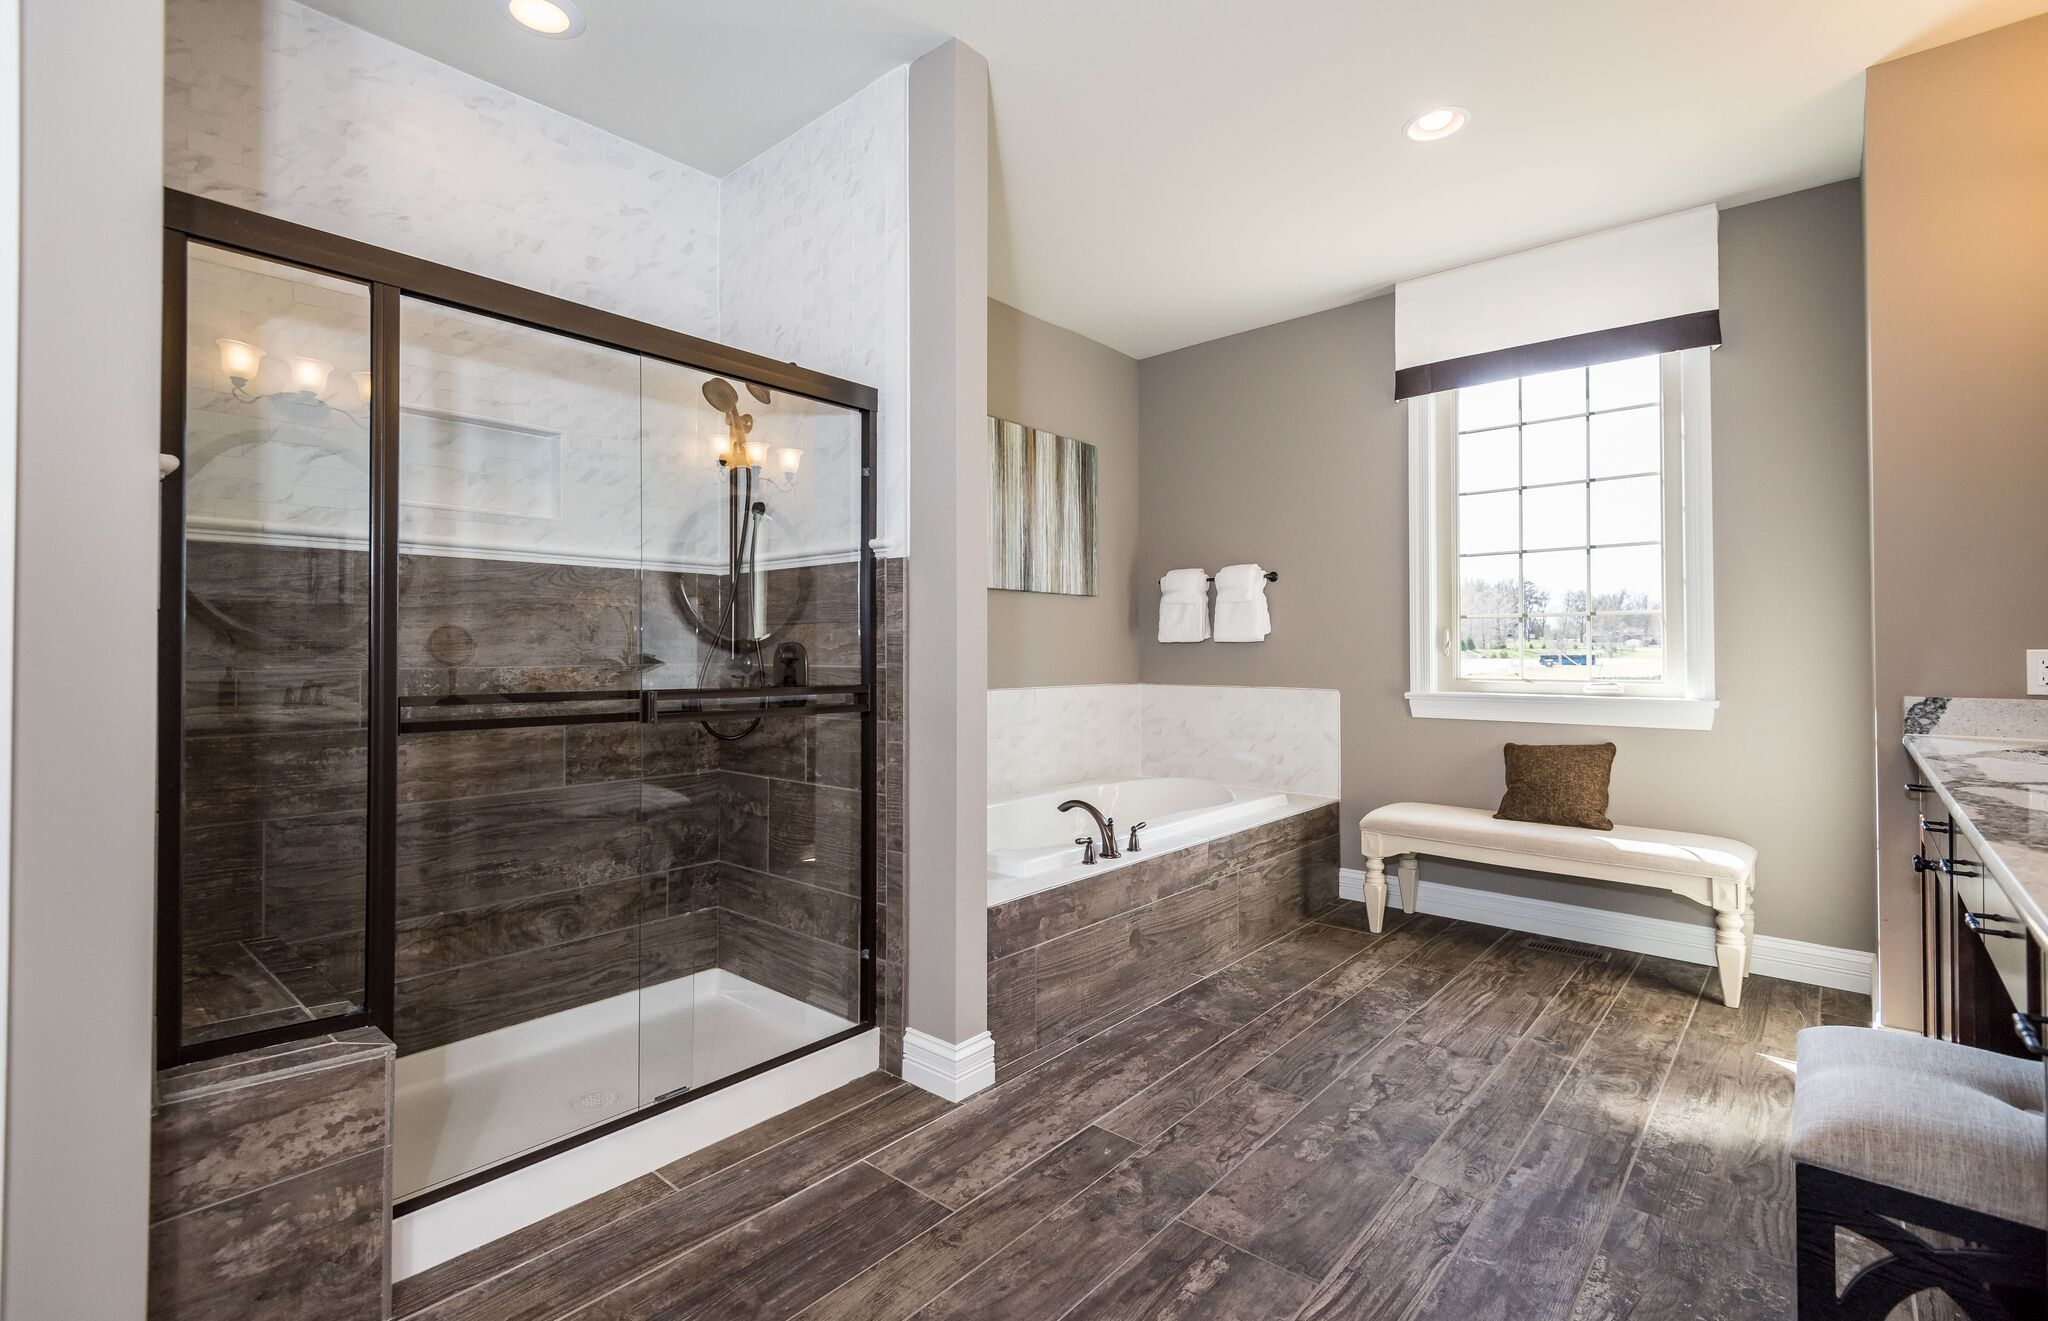 Why Stop At The Floors When You Re Feeling Woodsy In This Rustic Chic Bathroom Wood And Glass Come T Bathroom Design Help Pulte Homes Bathroom Neutral Colors